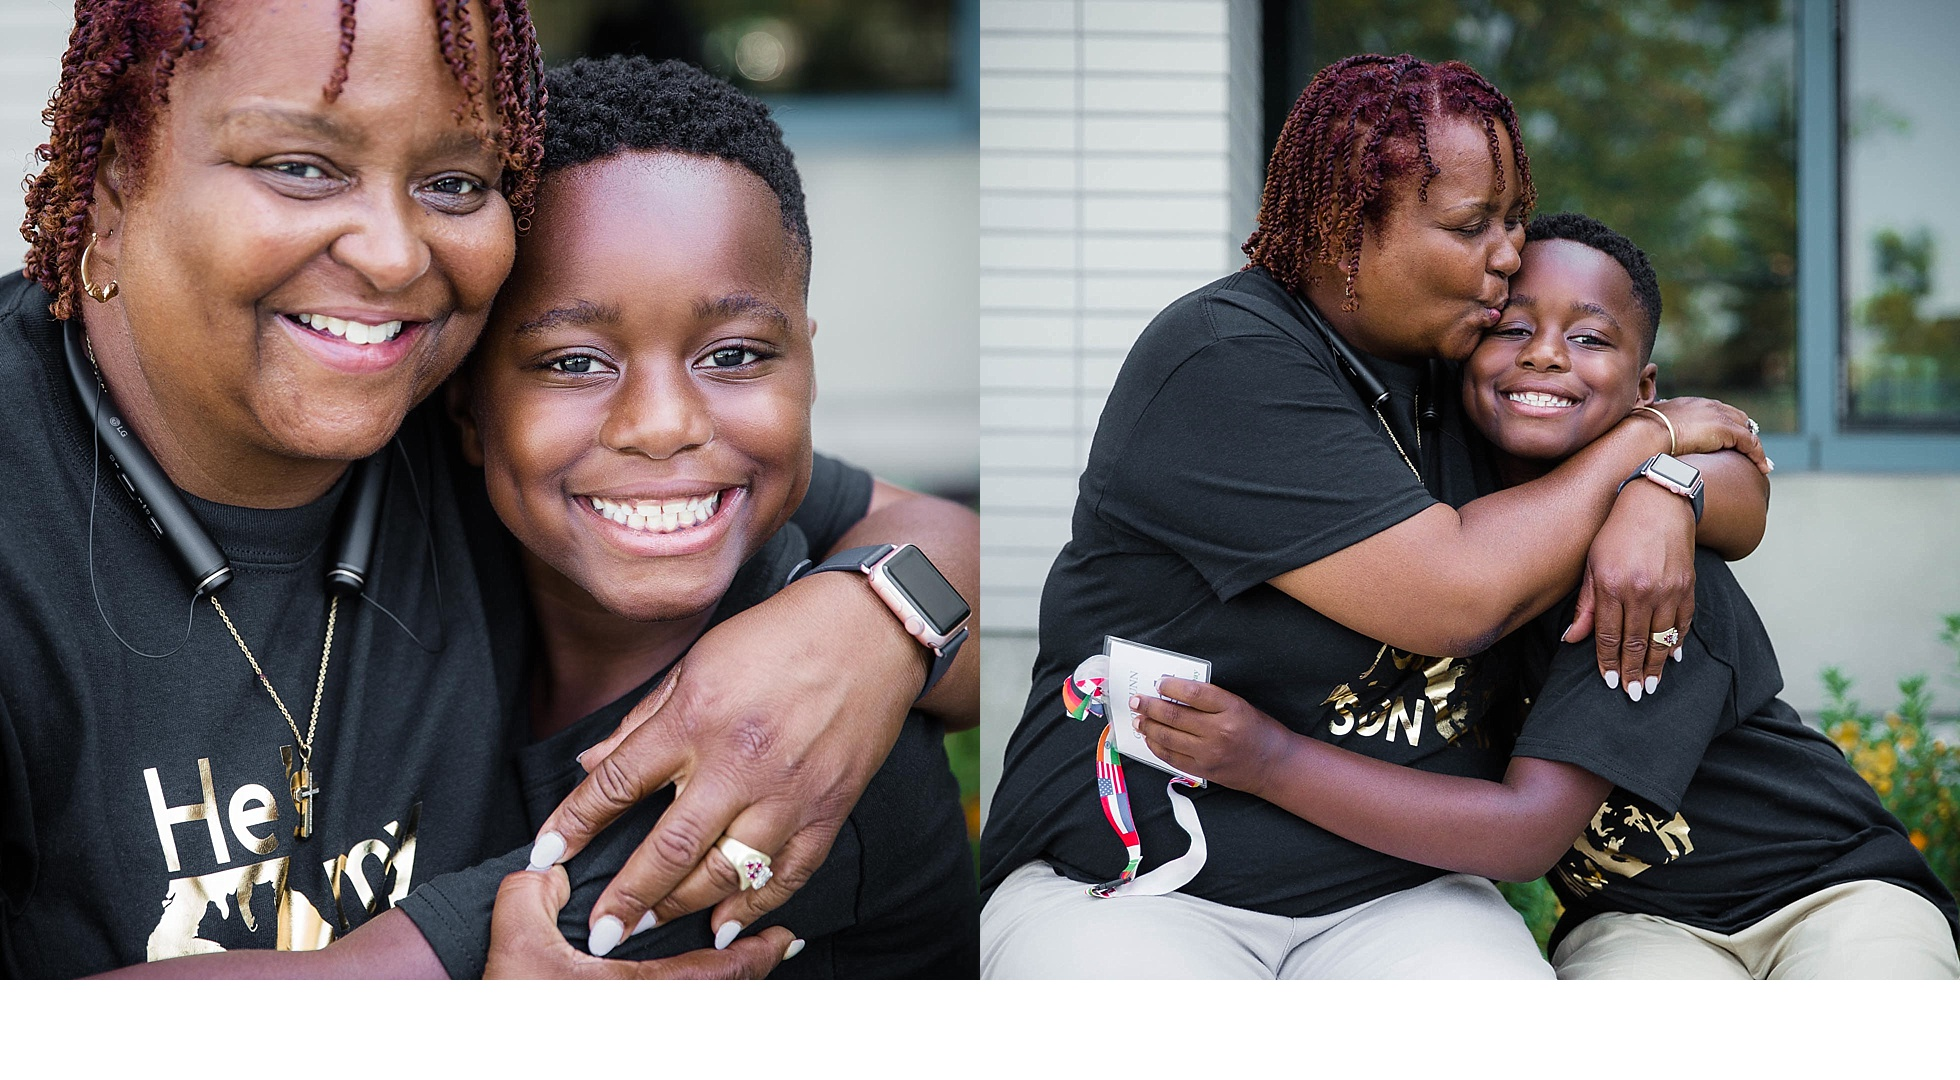 sally-ann-field-adoption-finalization-LA-heart-gallery-childrens-courthouse-mother-son-20.jpg